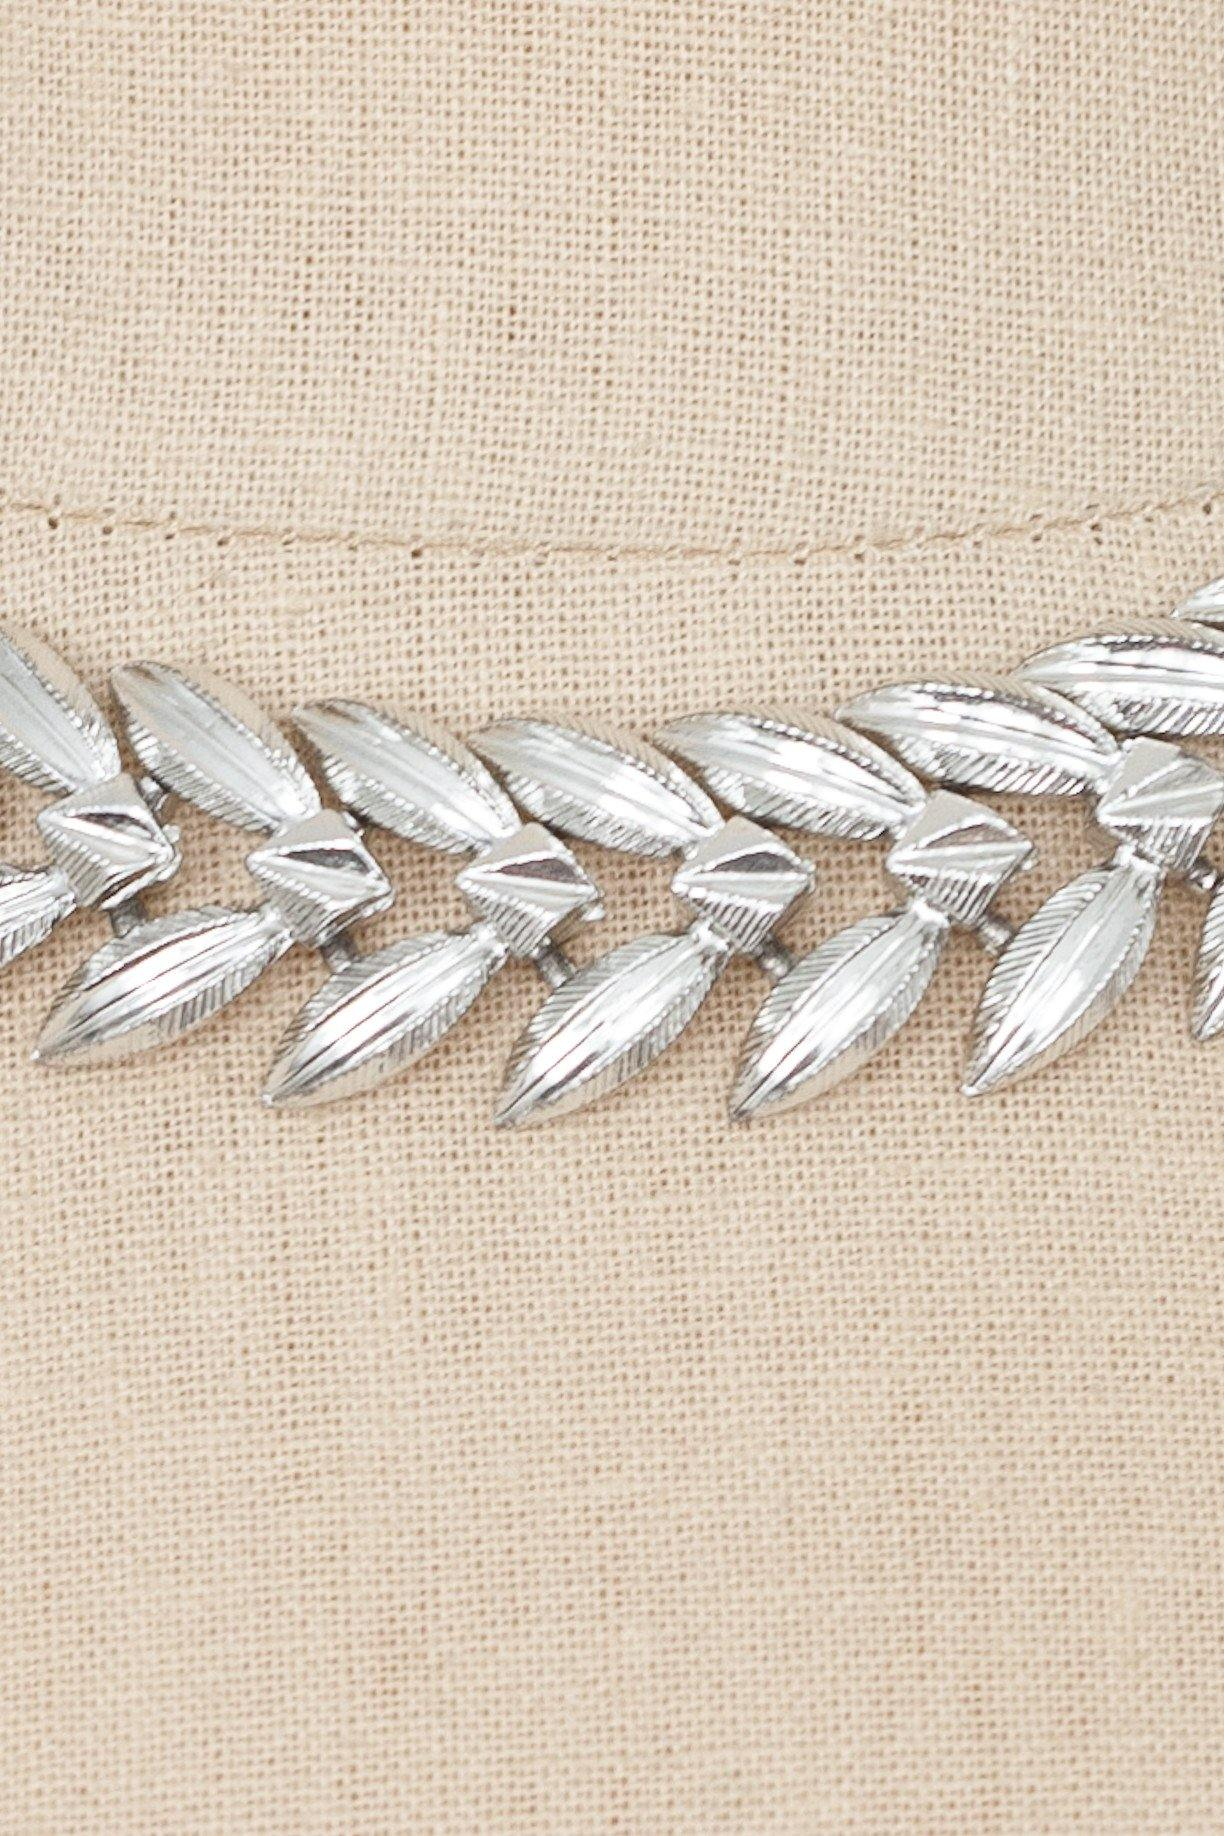 60's__Coro__Leaf Necklace